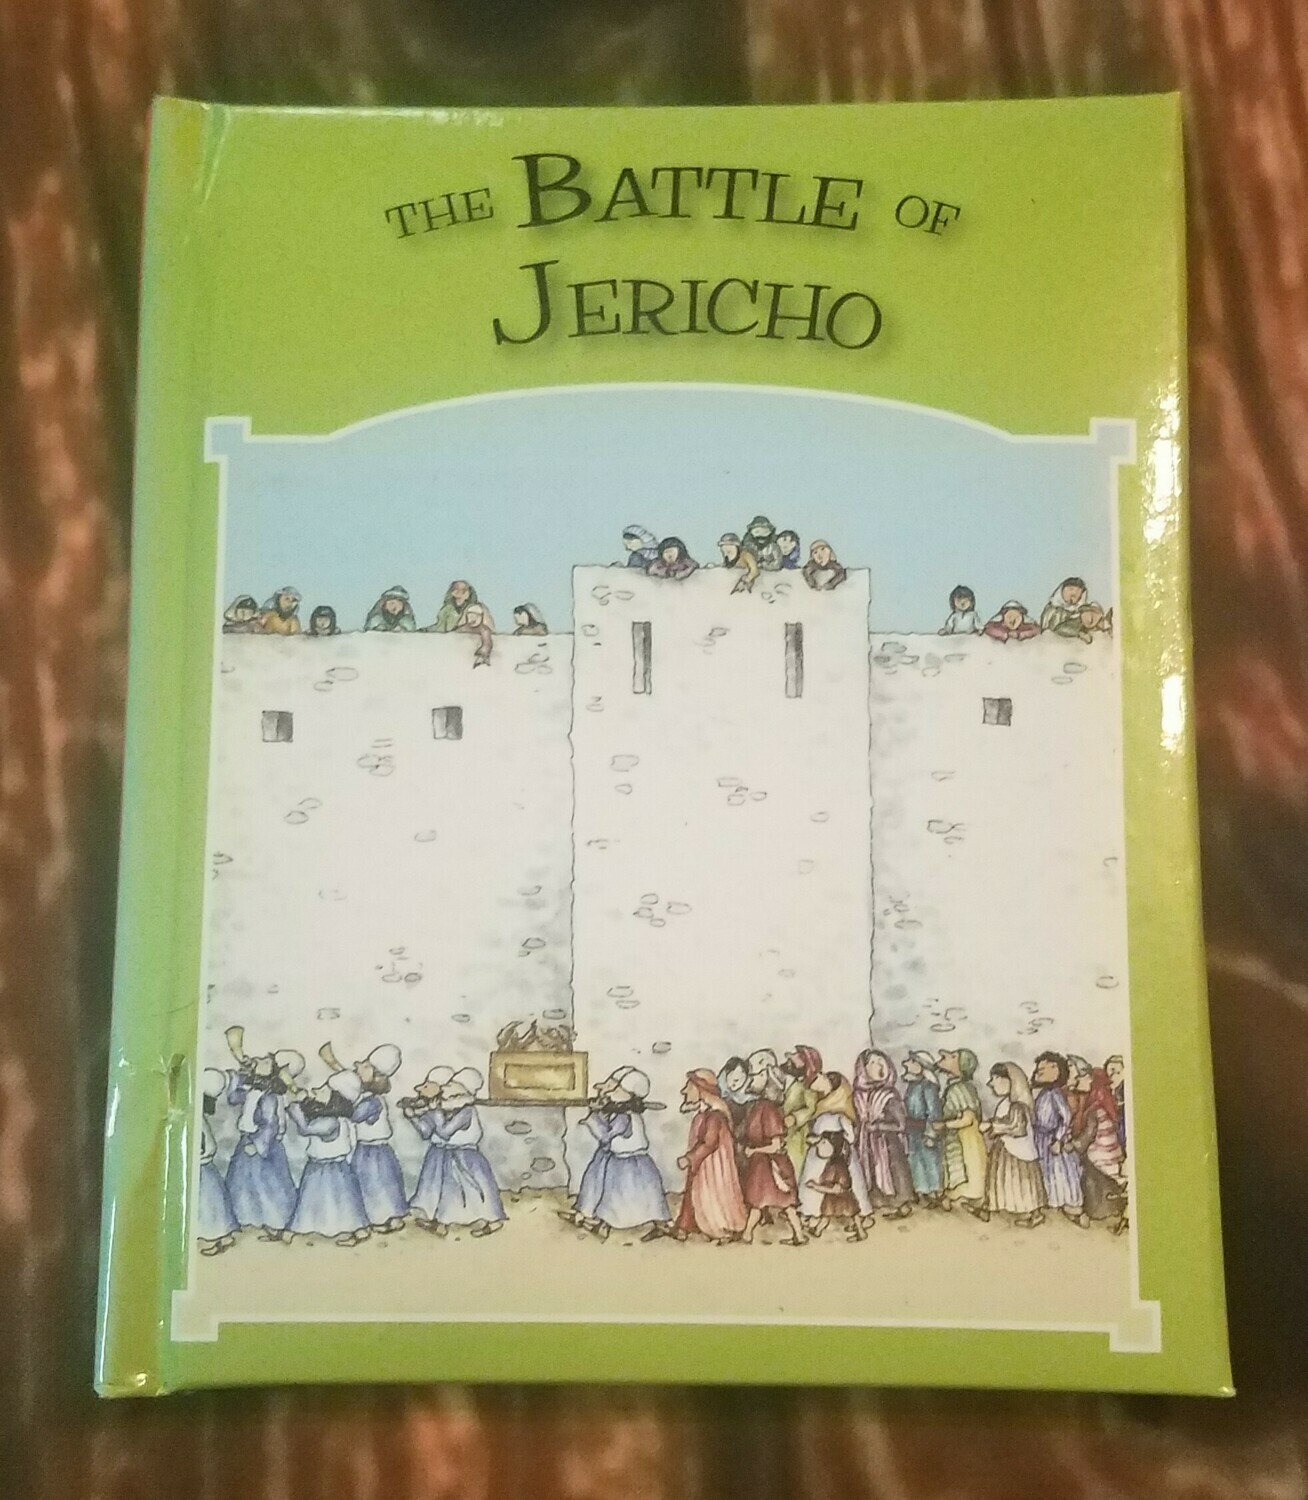 The Battle of Jericho by Tim and Jenny Wood